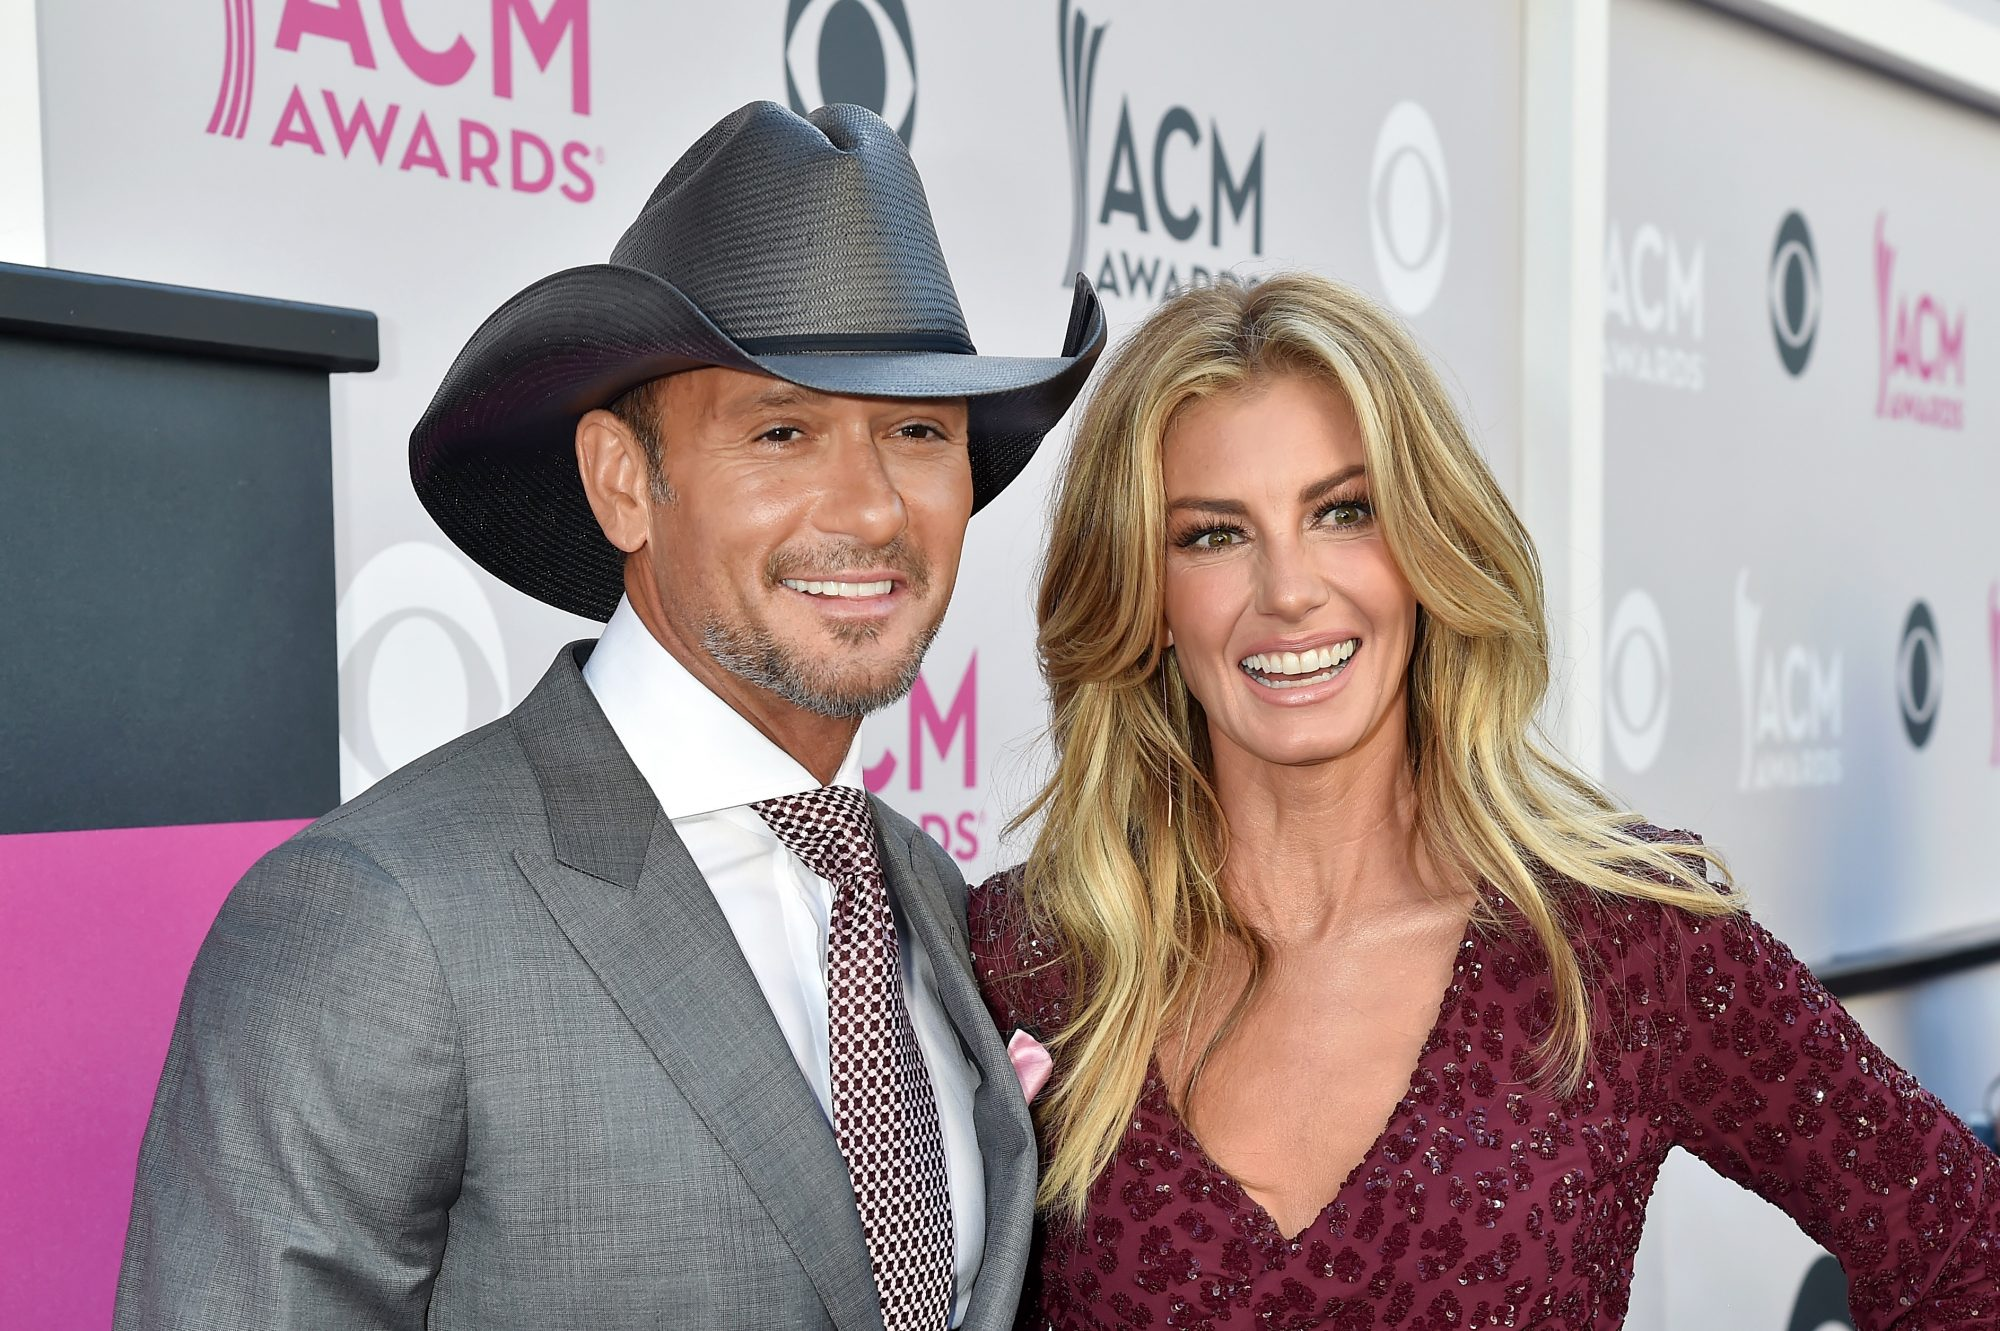 ACMs Tim McGraw and Faith Hill Red Carpet